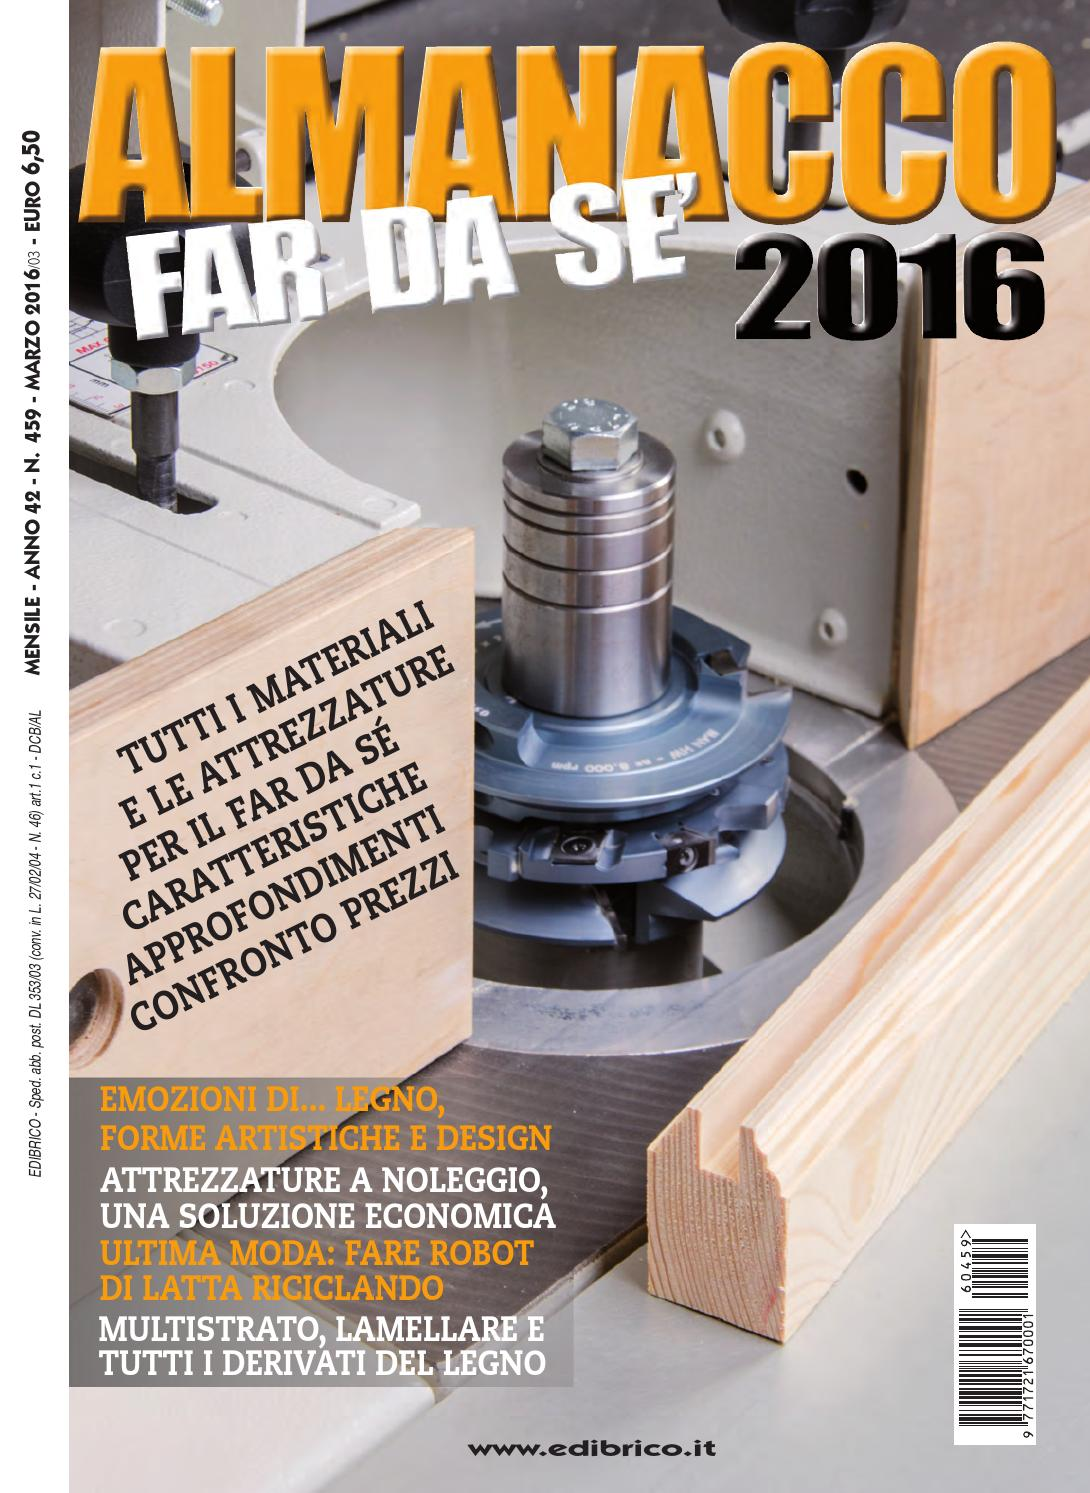 Almanacco Far da sé 2016 by Edibrico - issuu 5bf25384937